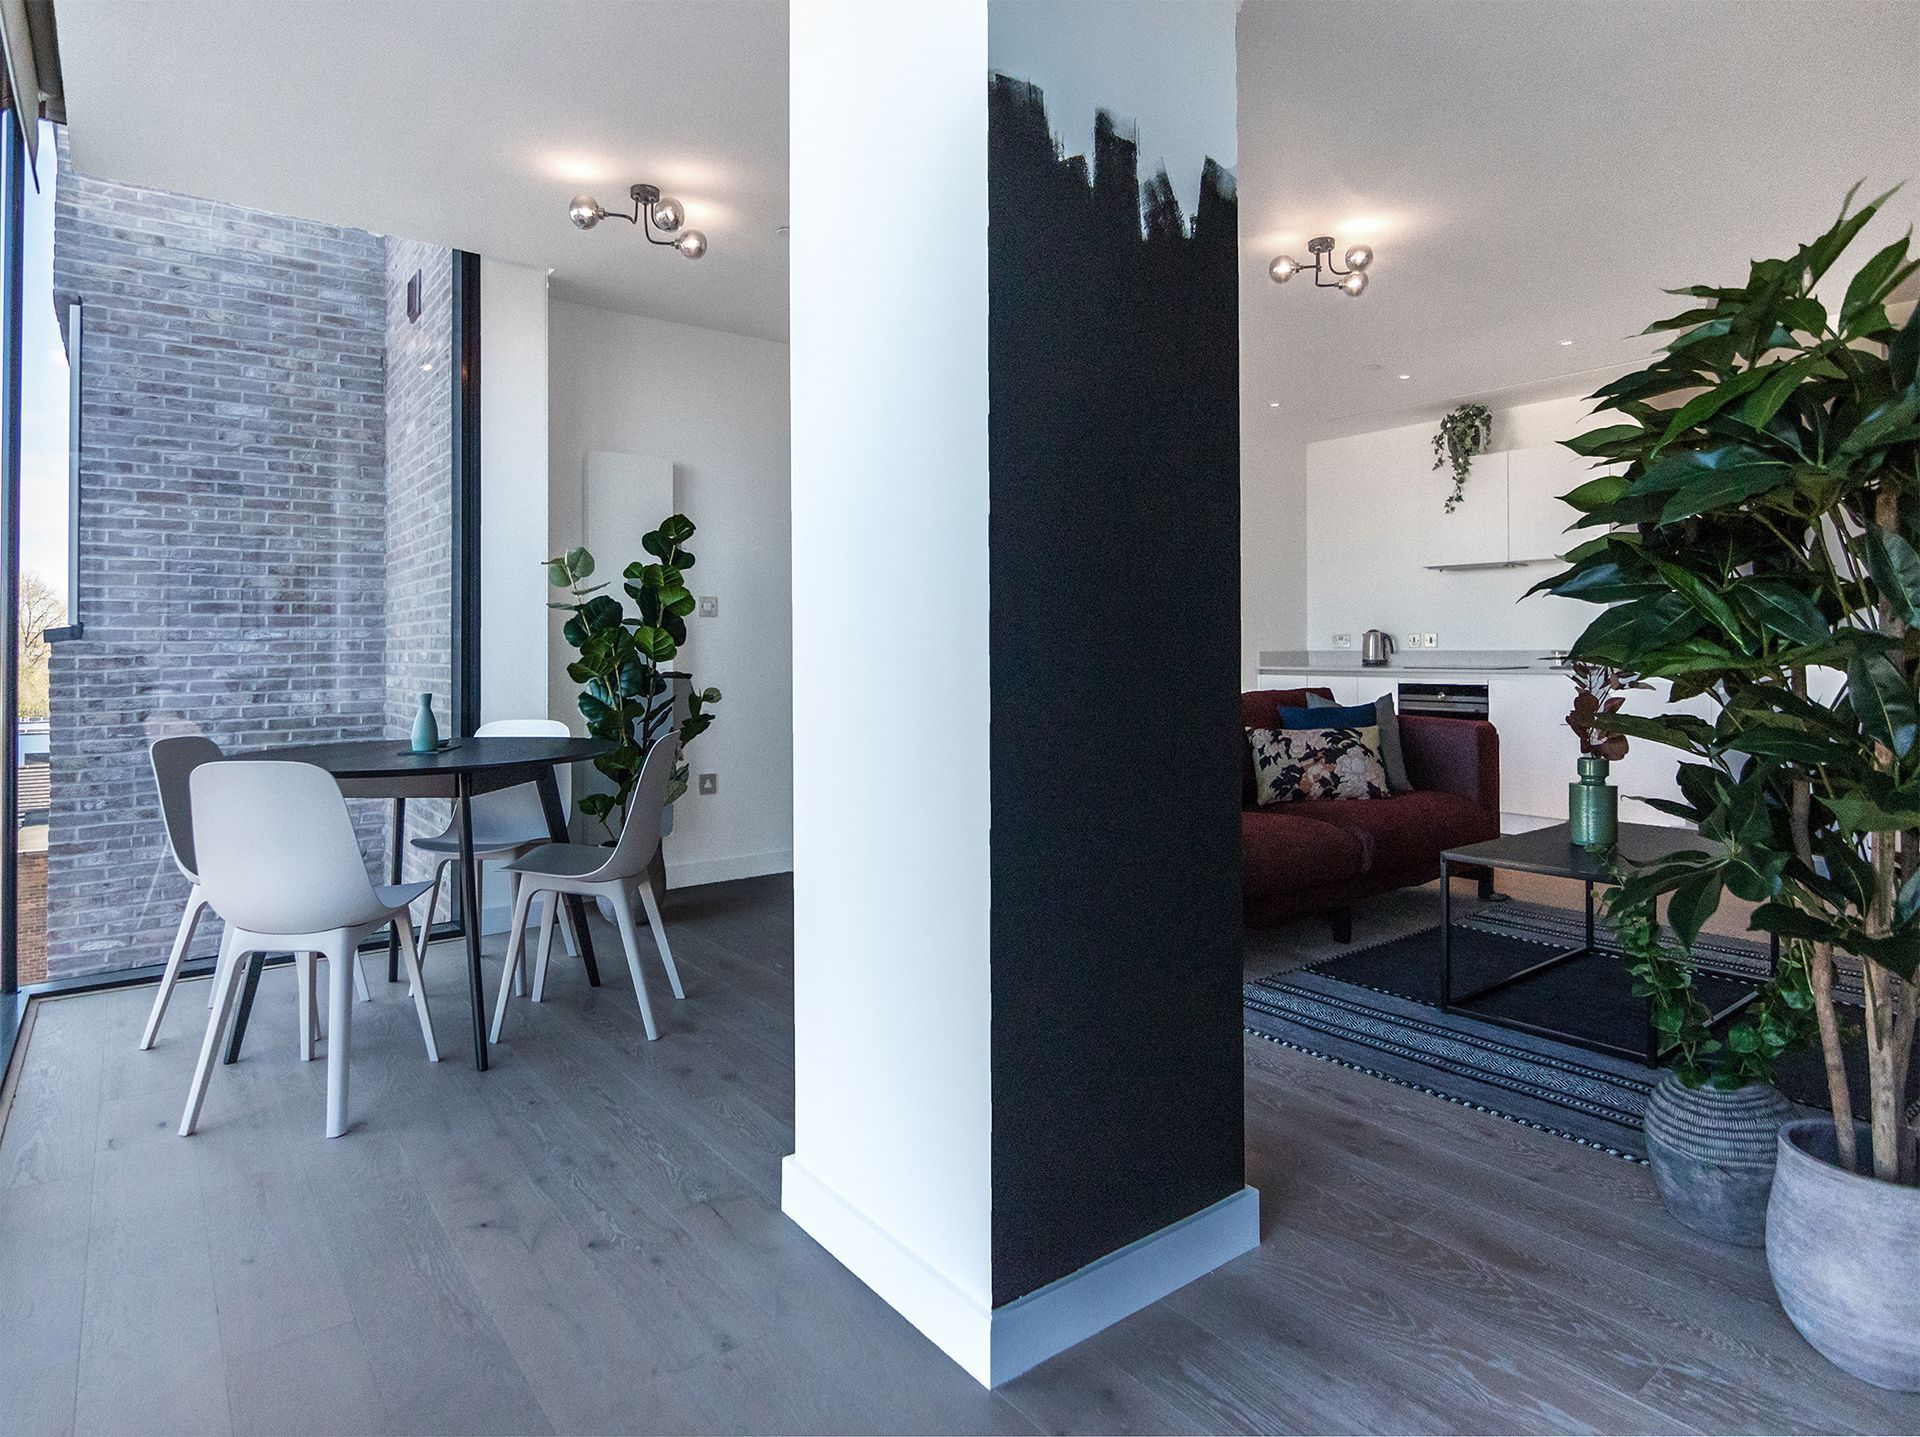 1 Bedroom apartment to rent in London HIL-HH-0906